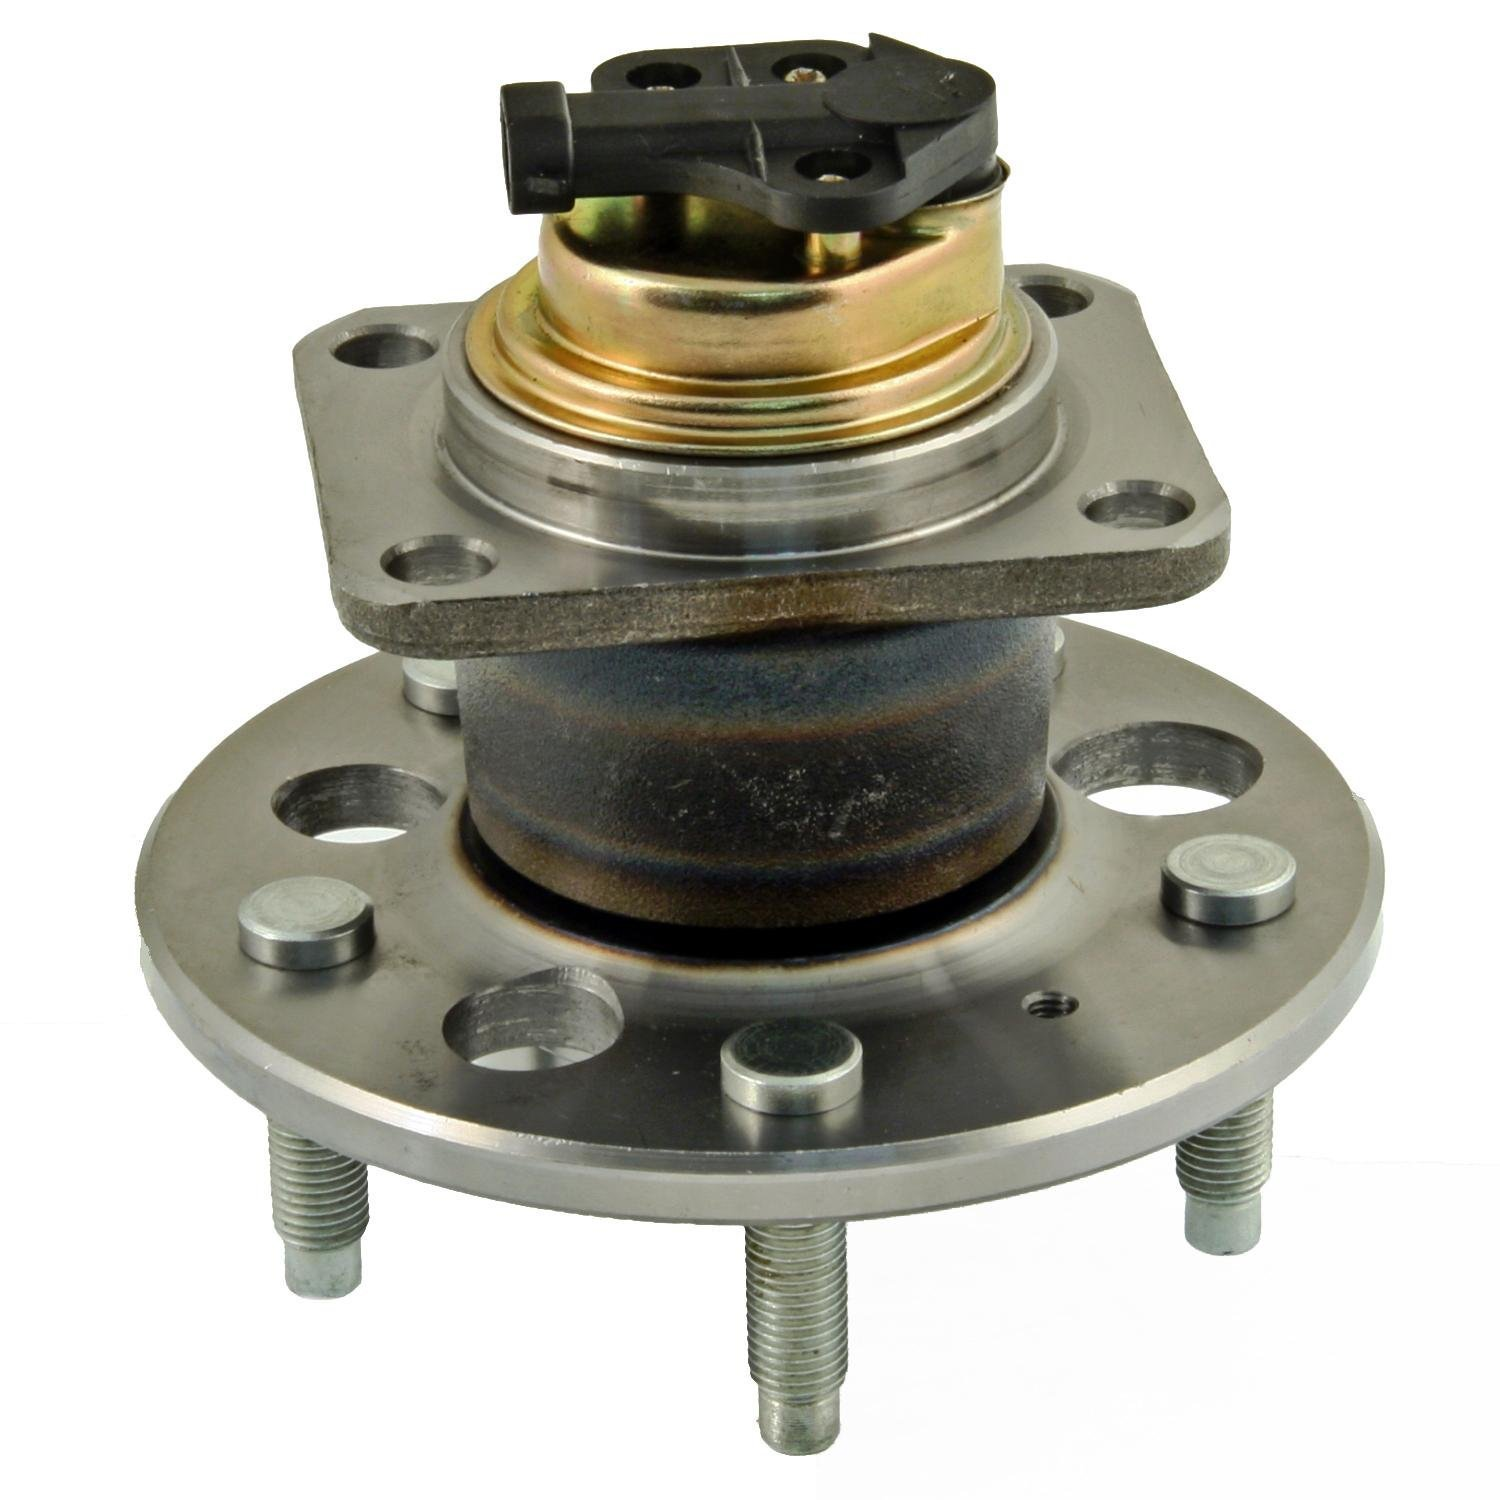 APDTY 513062 Wheel Hub Bearing Assembly Fits Rear Left Or Right 91-99 Lesabre, Eighty-Eight, & Bonneville, 91-96 Park Avenue & Ninety-Eight, 91-93 Deville & Fleetwood (Replaces 7470541)